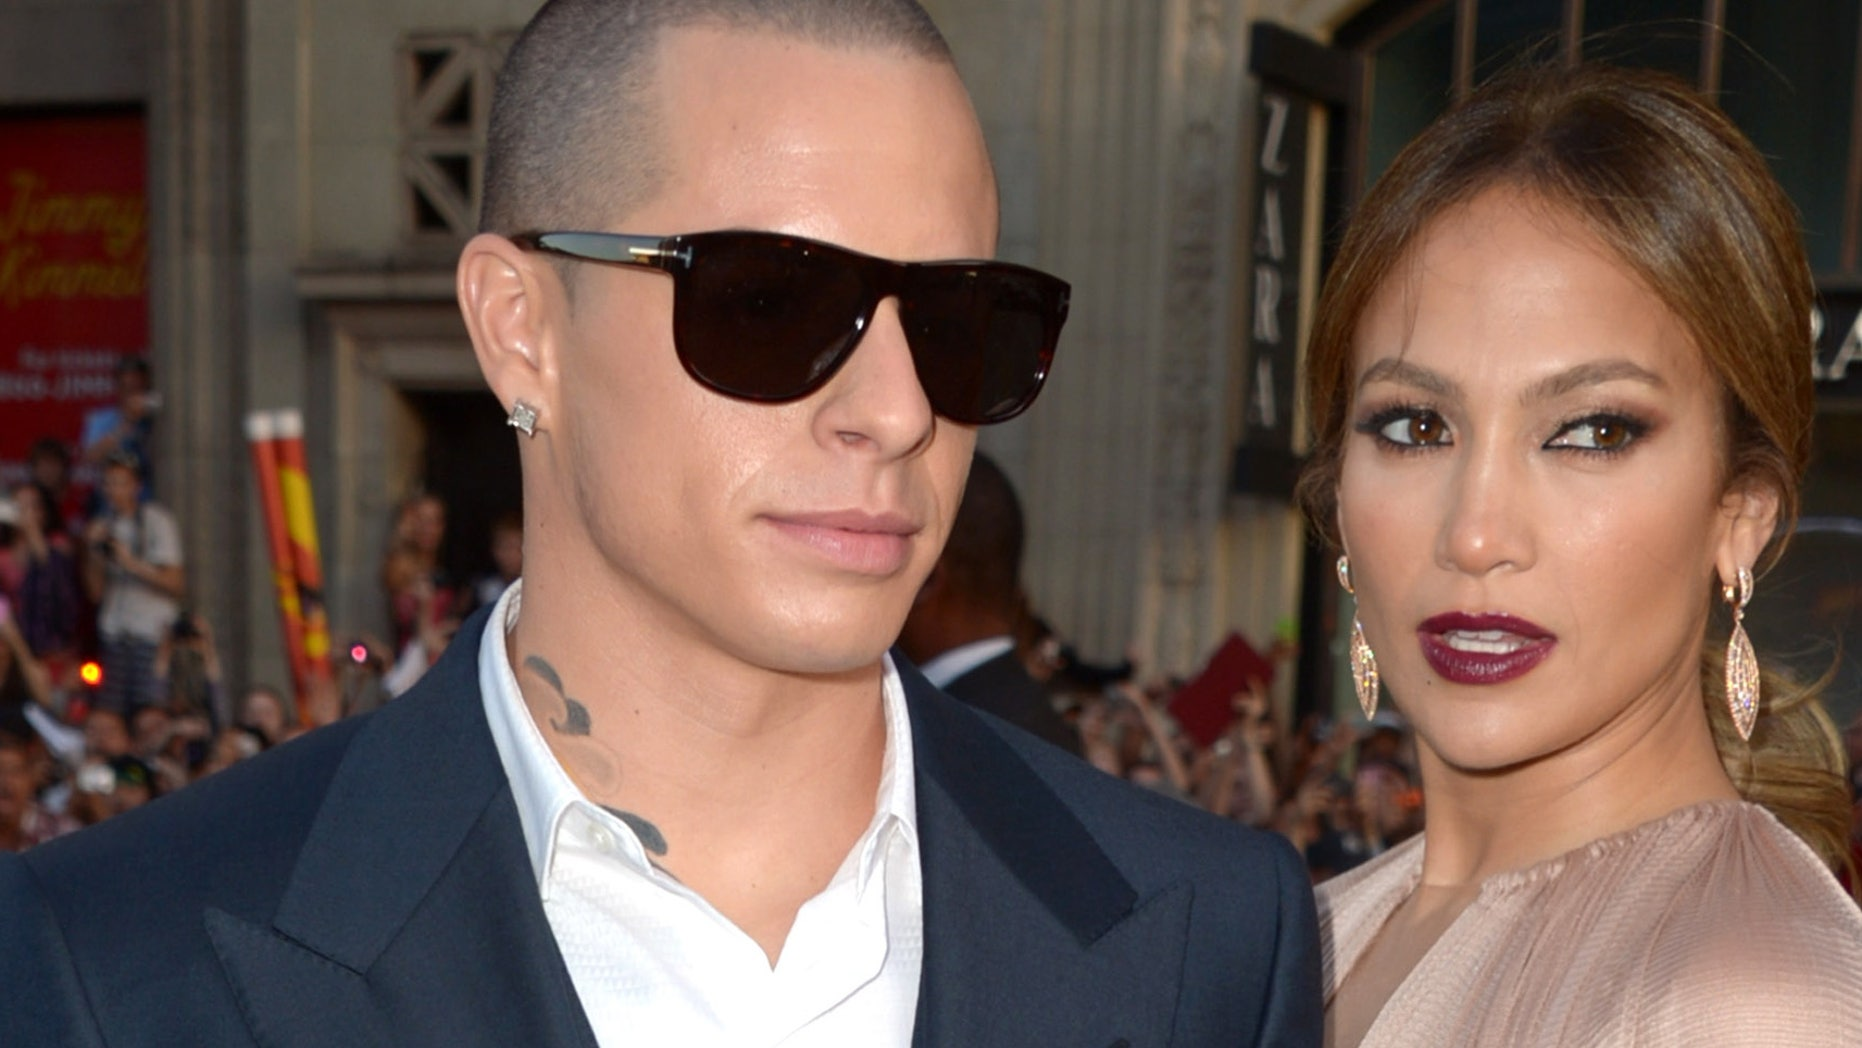 """HOLLYWOOD, CA - MAY 14:  Dancer Casper Smart and actress Jennifer Lopez arrive at the premiere of Lionsgate's """"What To Expect When You're Expecting"""" held at Grauman's Chinese Theatre on May 14, 2012 in Hollywood, California.  (Photo by Kevin Winter/Getty Images)"""